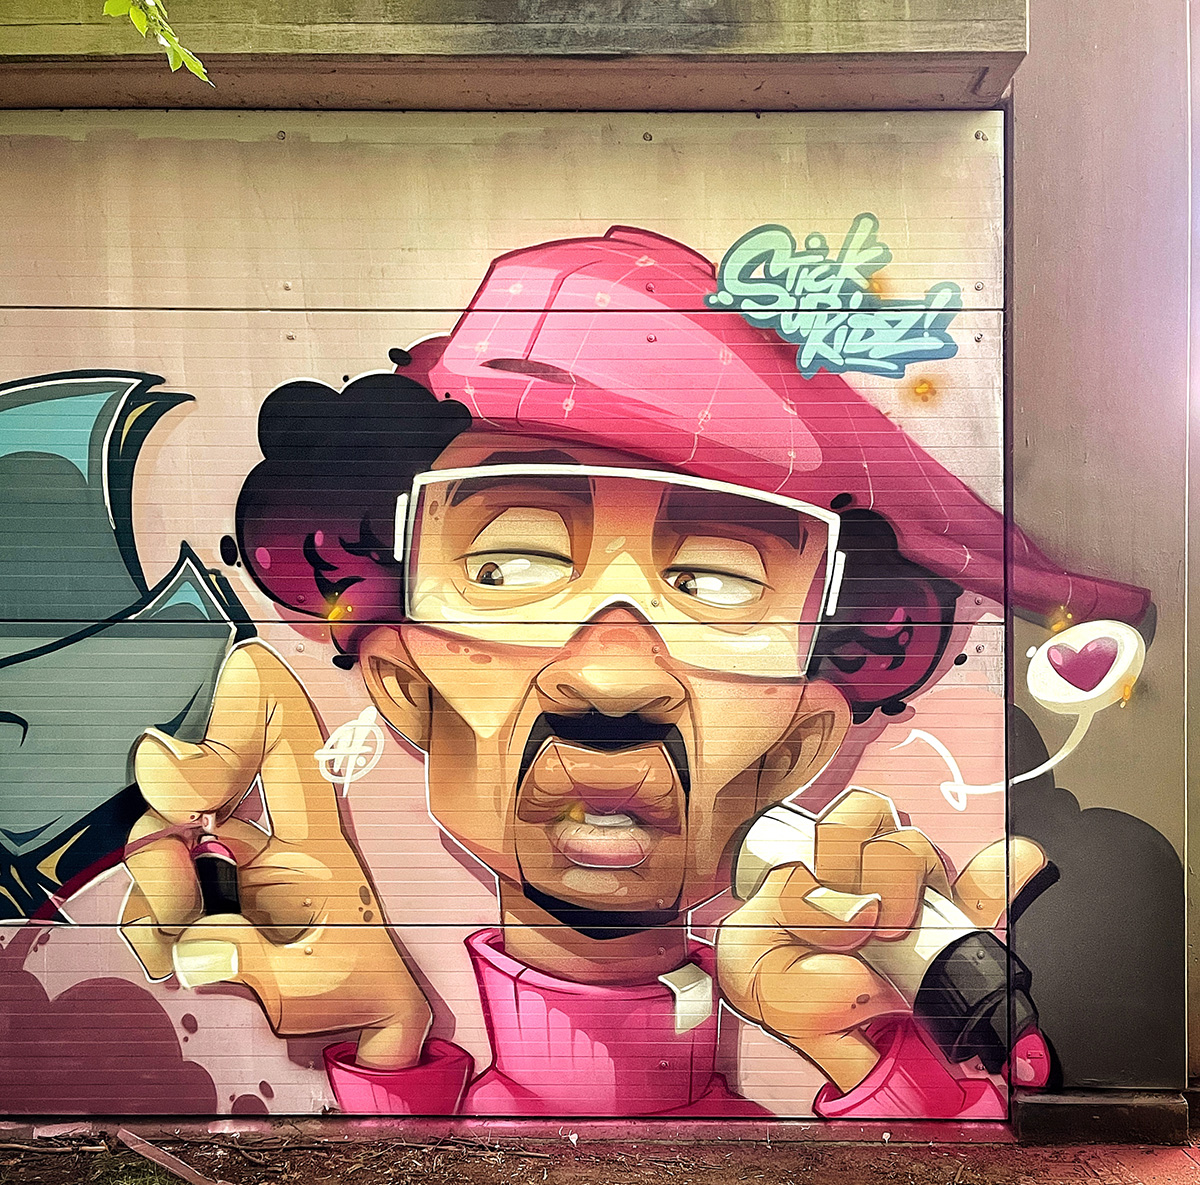 B-Boy in Pink by Hombre SUK